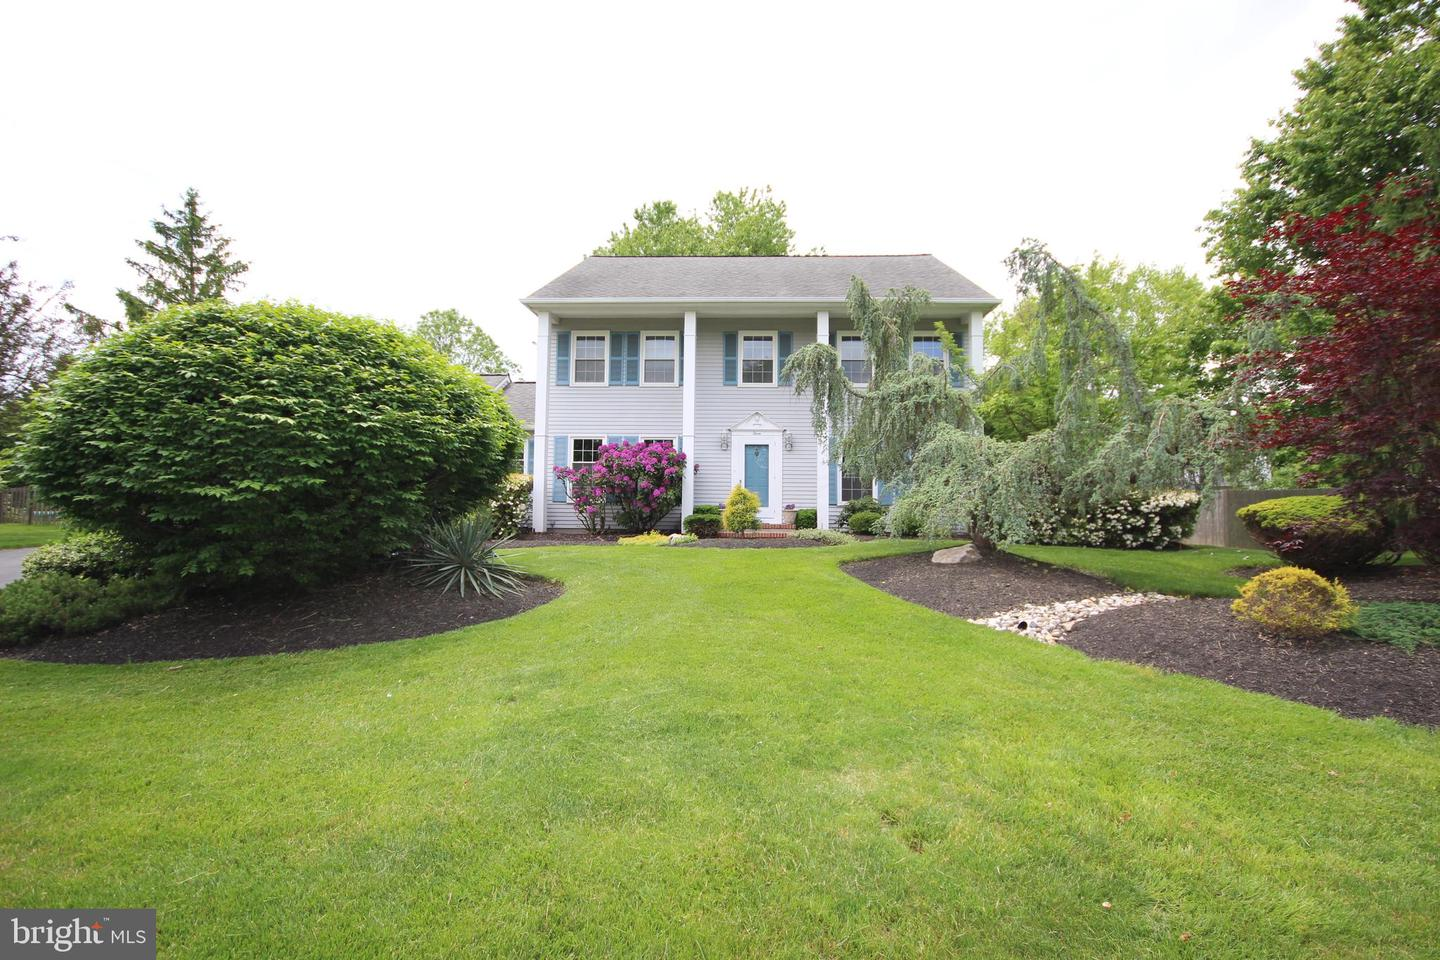 Property for Sale at 3 ABBY Drive Lawrenceville, New Jersey 08648 United States